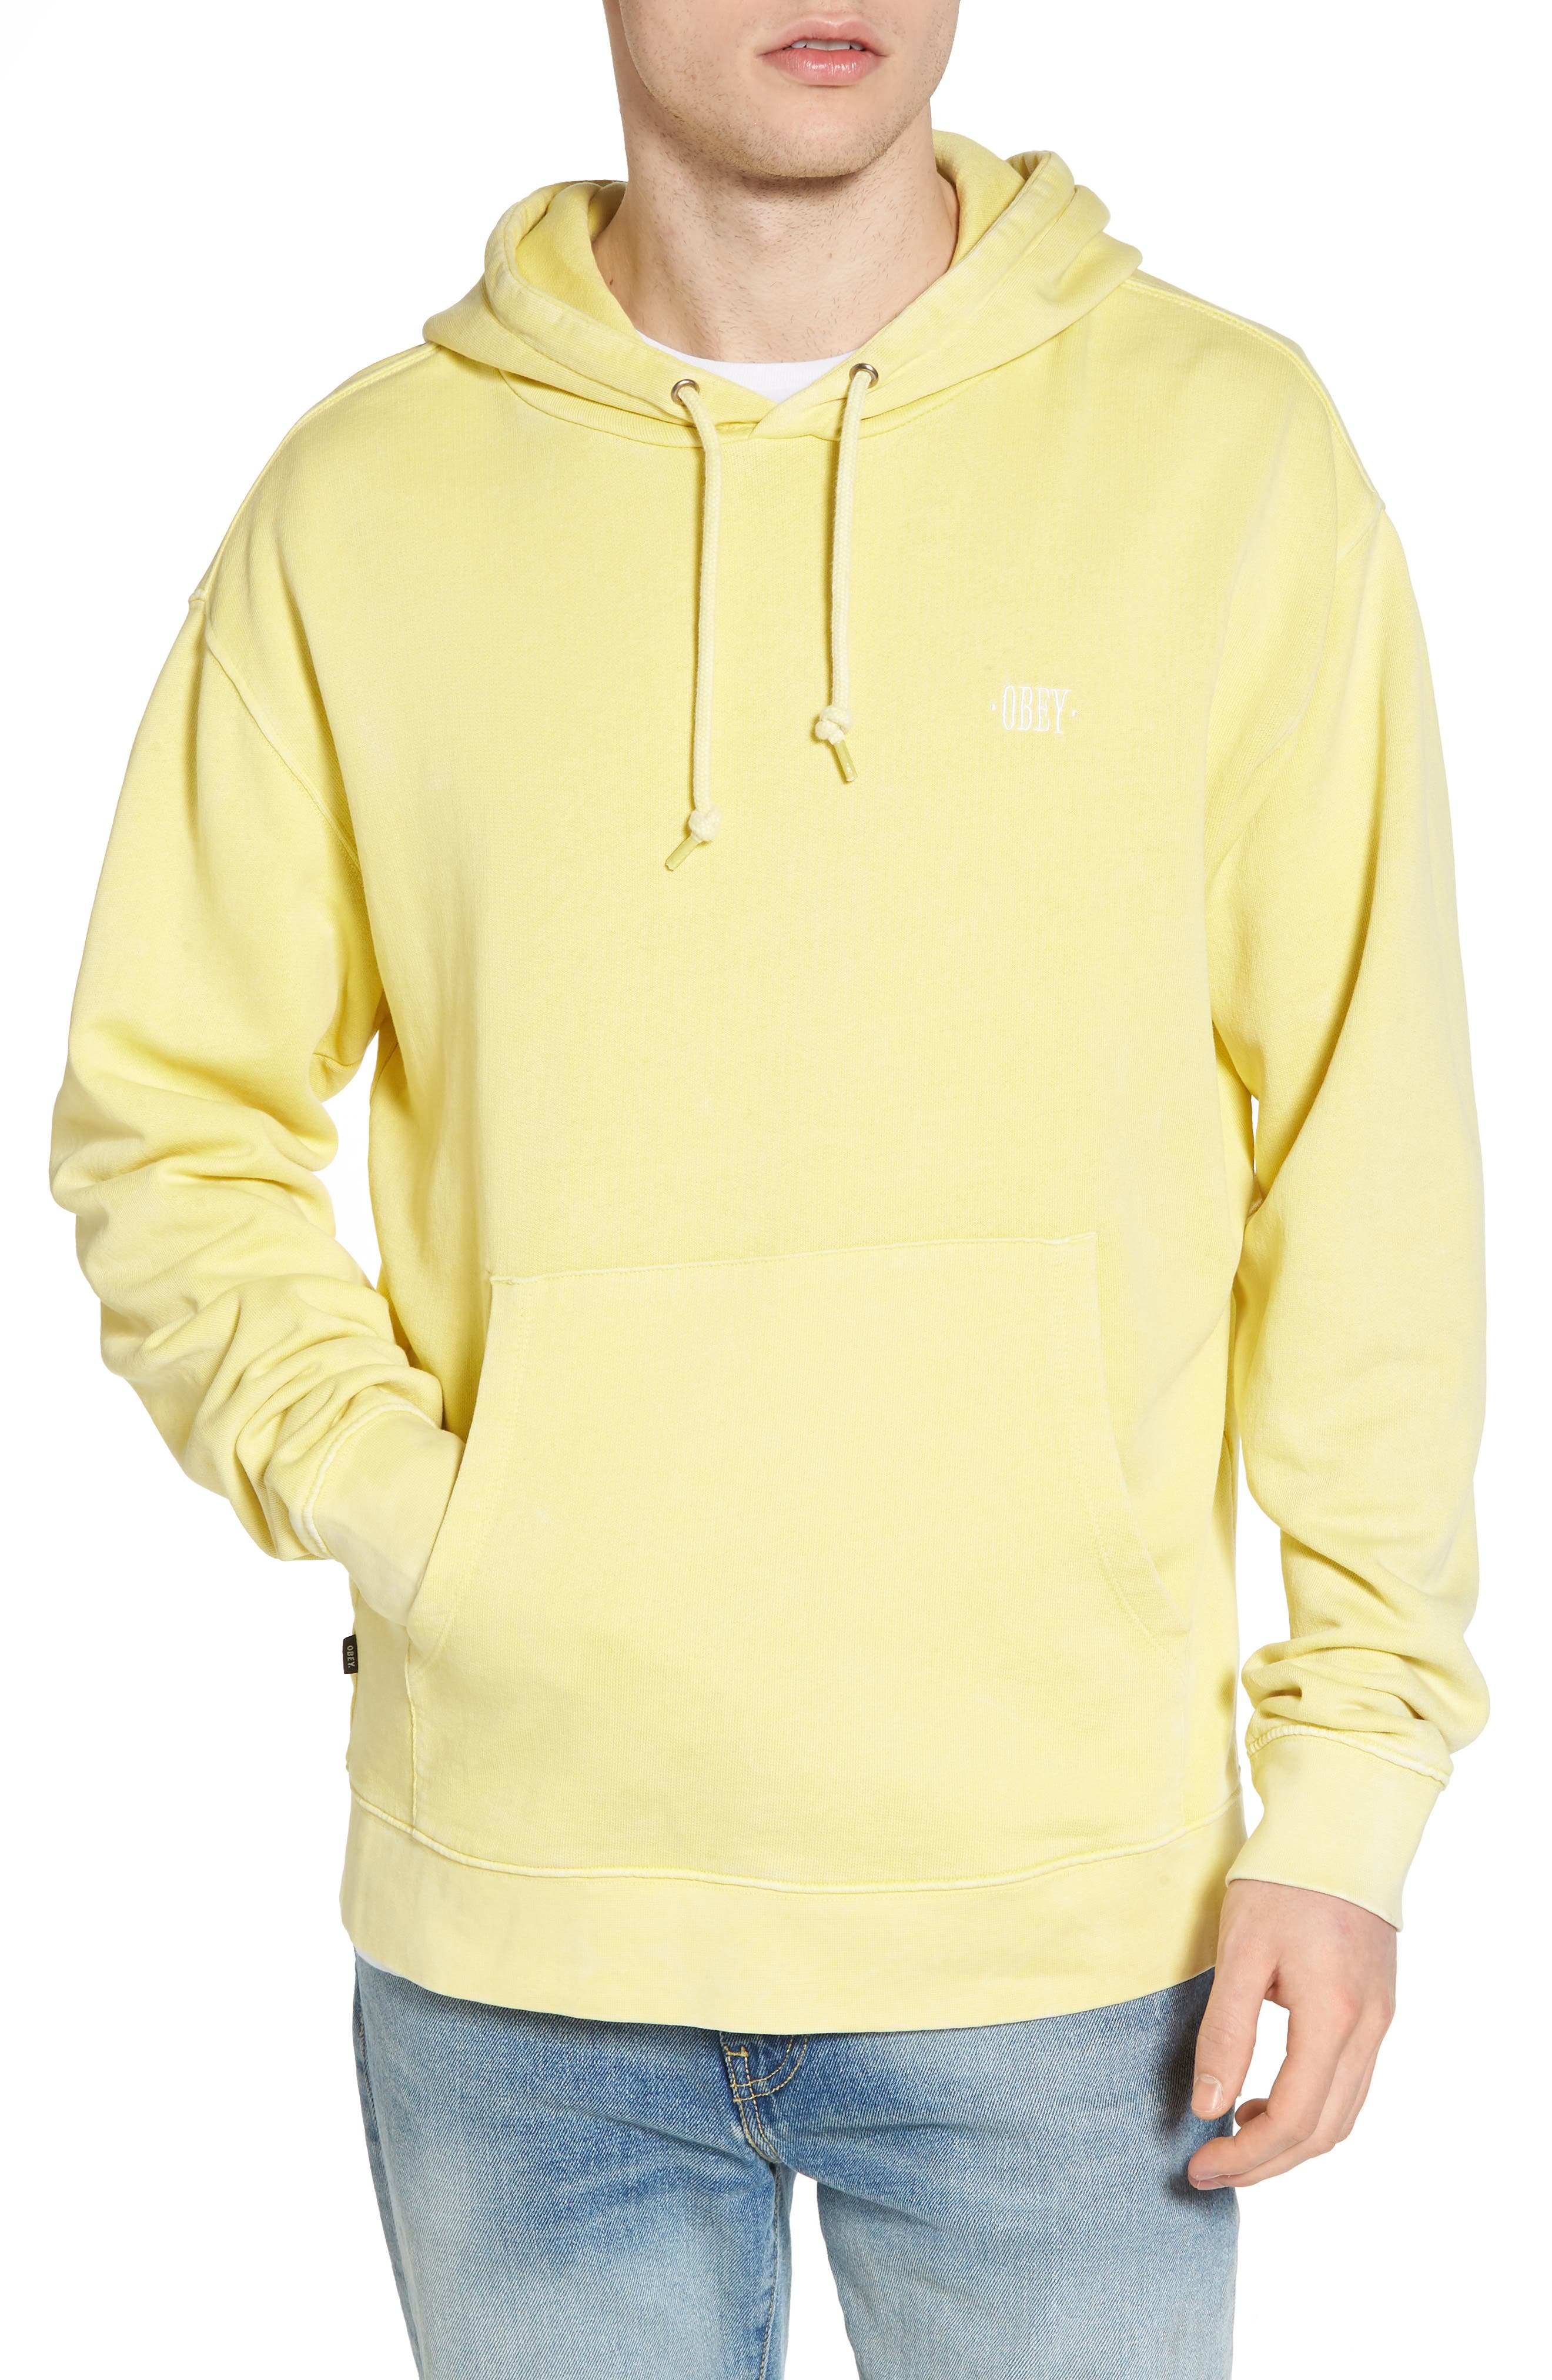 Faded Pigment Dyed Hoodie Sweatshirt,                         Main,                         color, 700